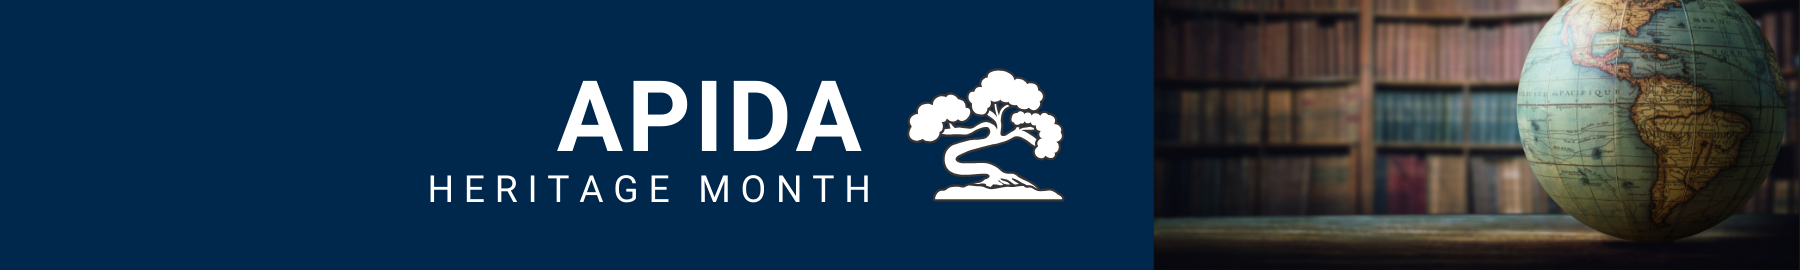 APIDA Heritage Month banner